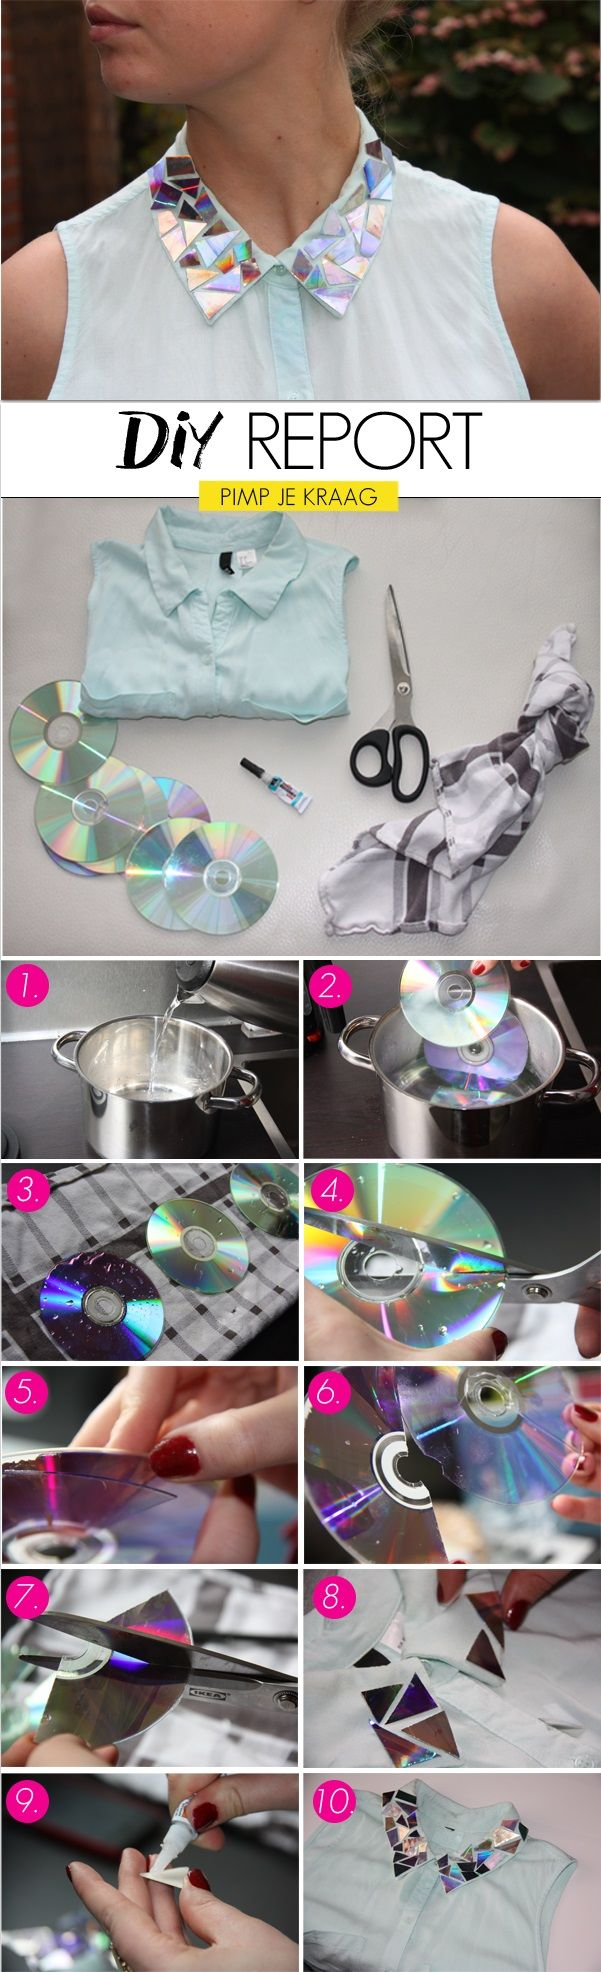 CDs-Shining-Effect-on-Your-Clothes-DIY